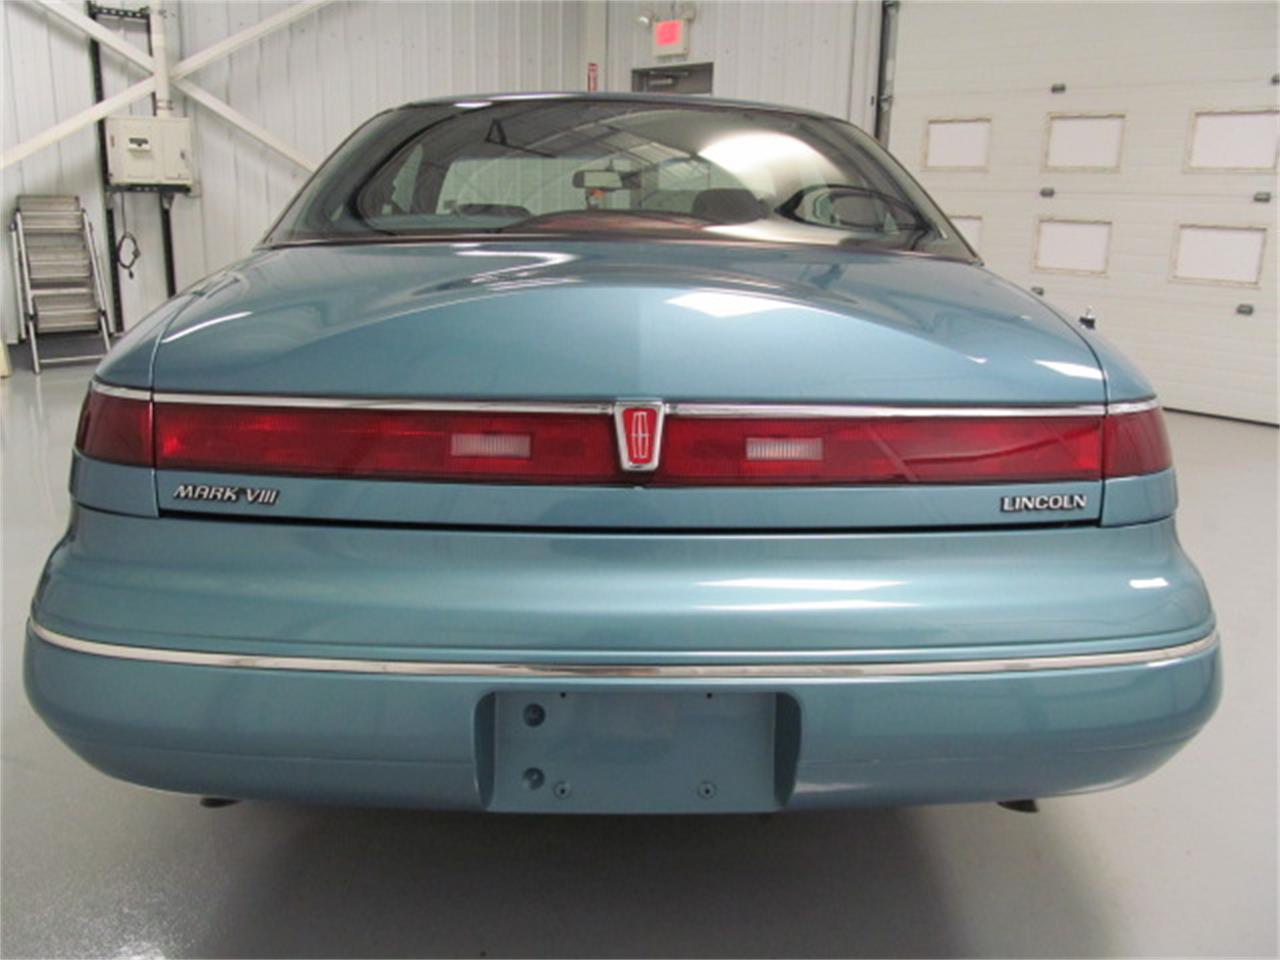 Large Picture of '93 Lincoln Mark VIII located in Christiansburg Virginia - $9,900.00 Offered by Duncan Imports & Classic Cars - JL9Z